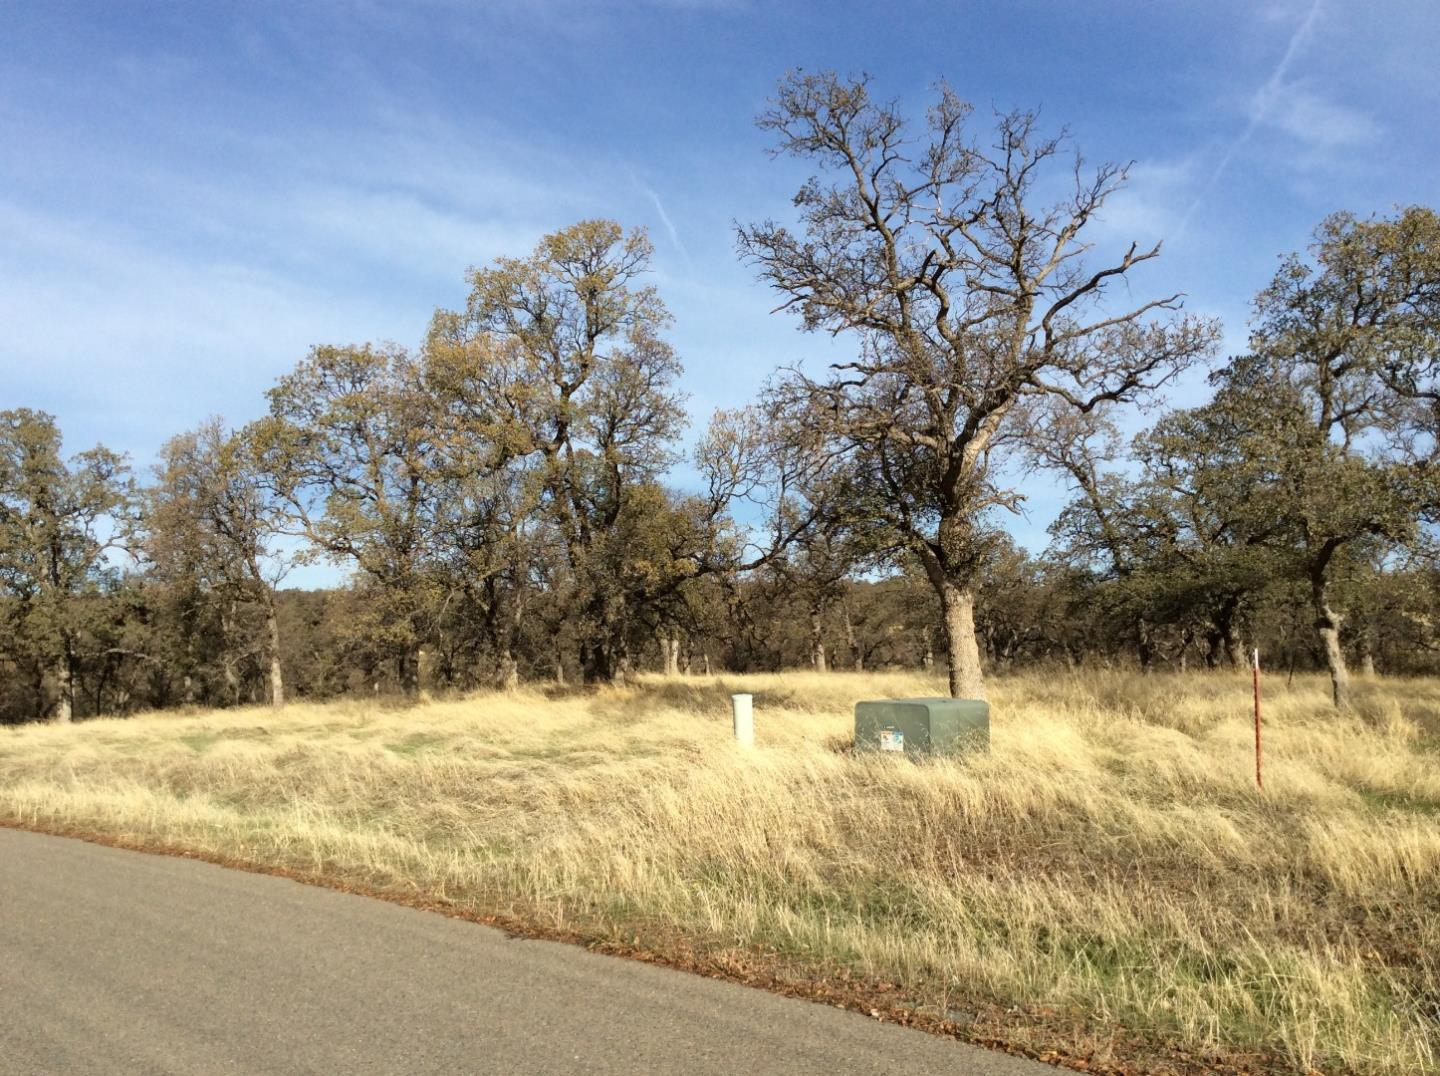 108 Lot 8 of Tract No.91 1002 Surrey Village, RED BLUFF, CA 96080